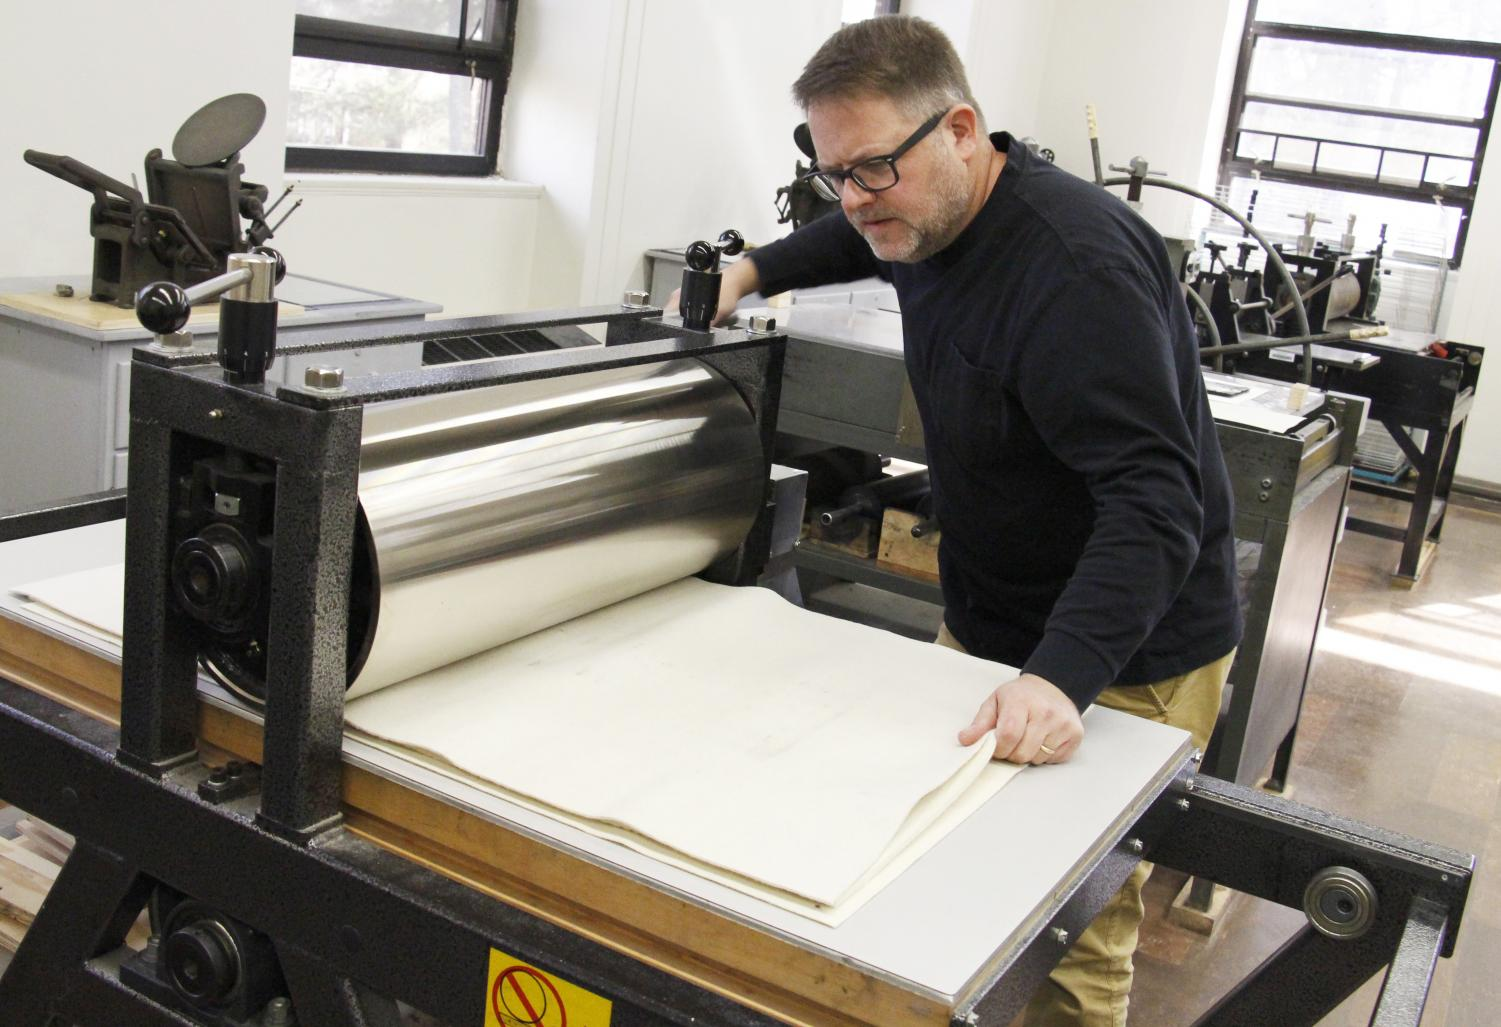 Ernest Milsted uses one of the printmaking machines located in Clark Hall room 303. His passion for photography, printmaking and the creativity of his students serves as an inspiration for his art.